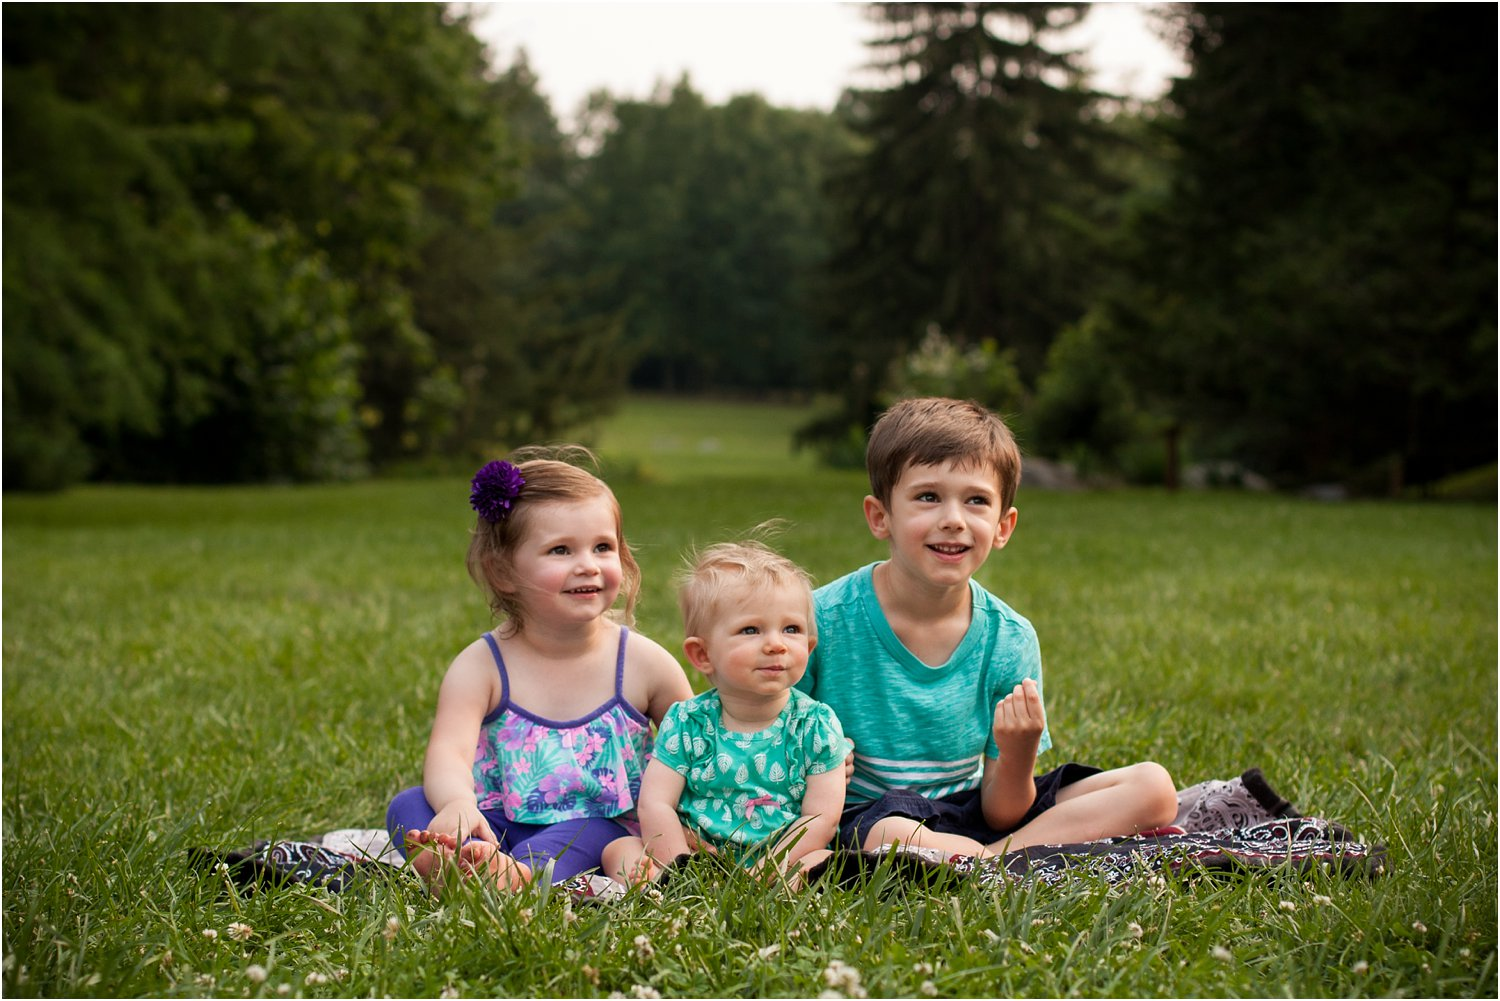 Blandy_Arboretum_Sibling_Mini_Sessions_Ouzts_0011.jpg